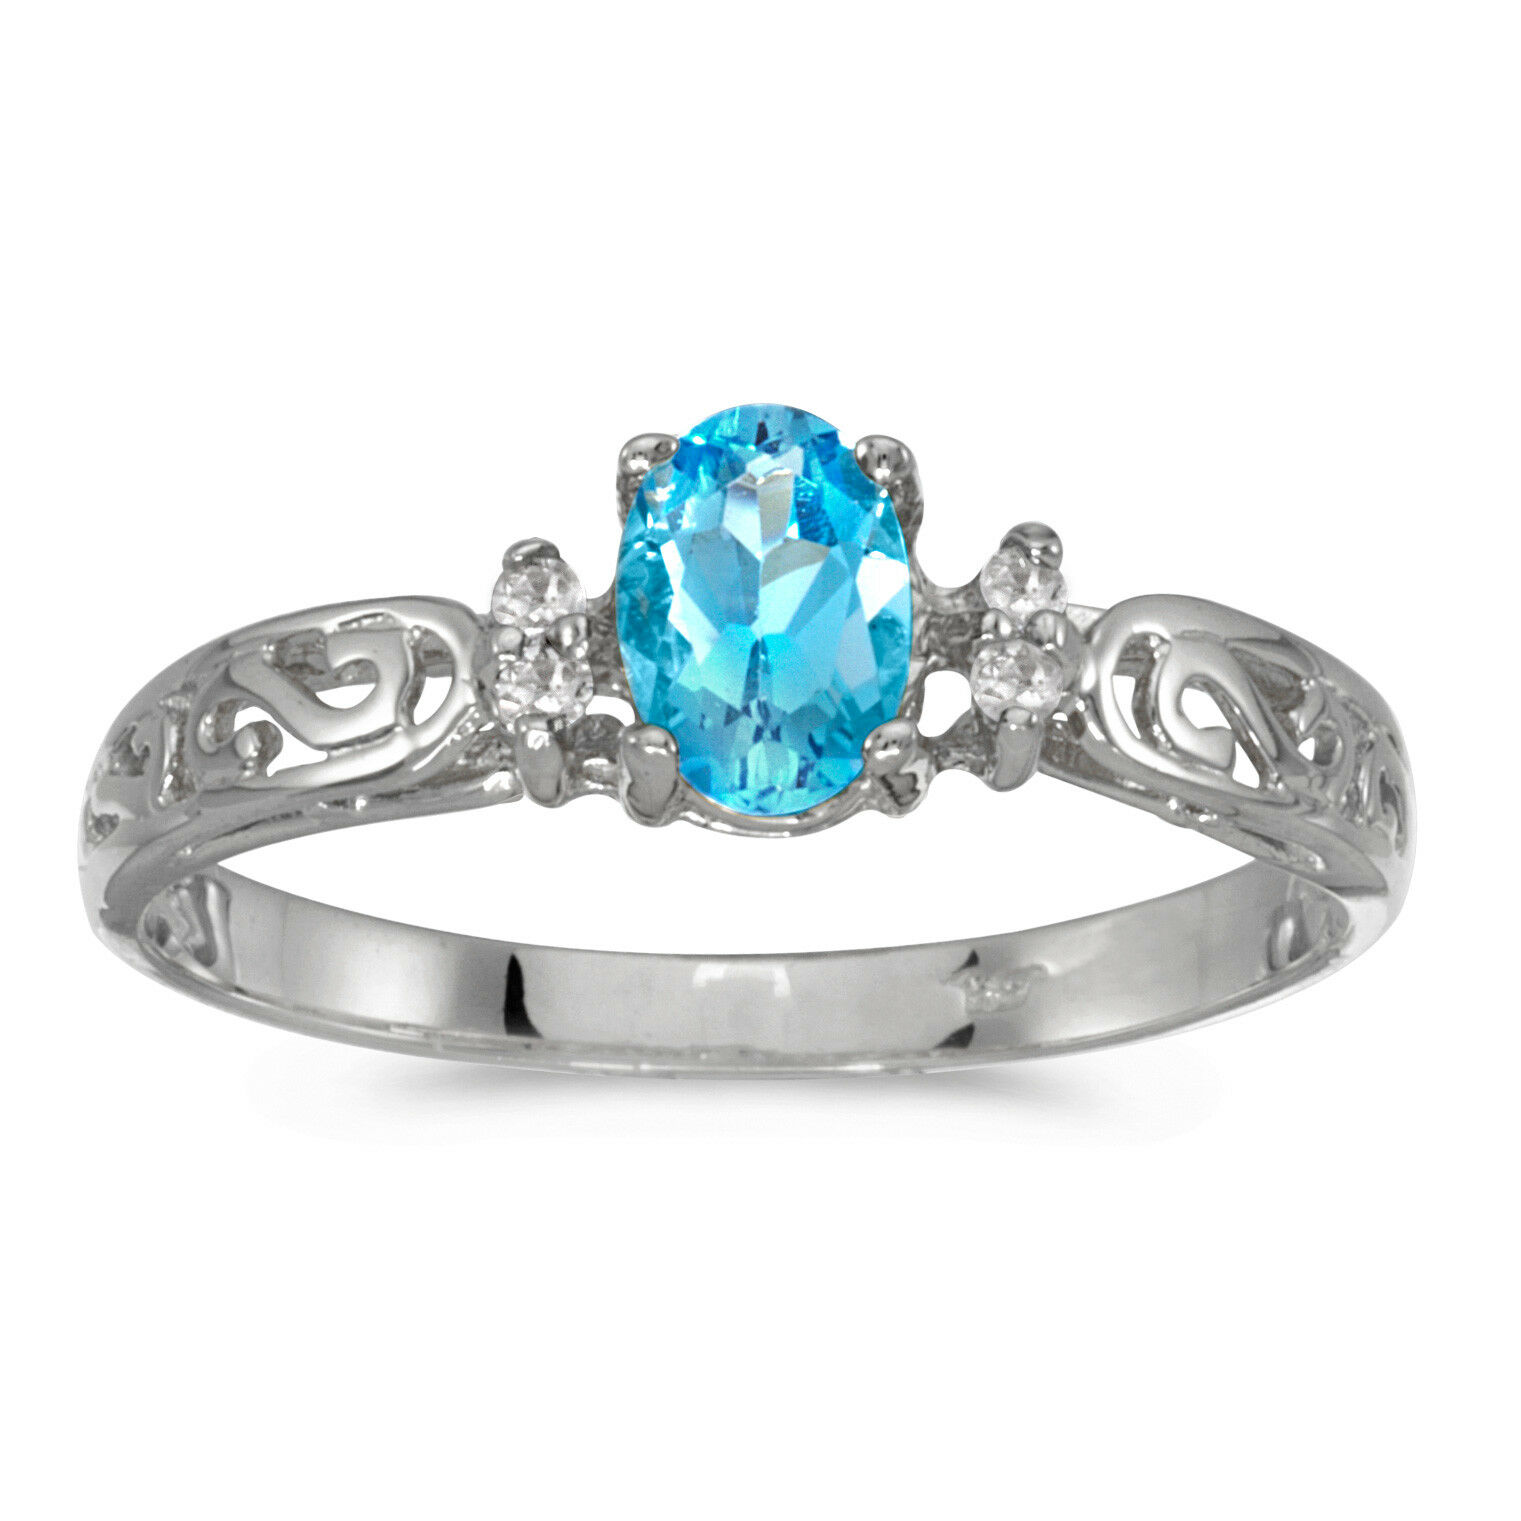 14k White gold Oval blueee Topaz And Diamond Filigree Ring